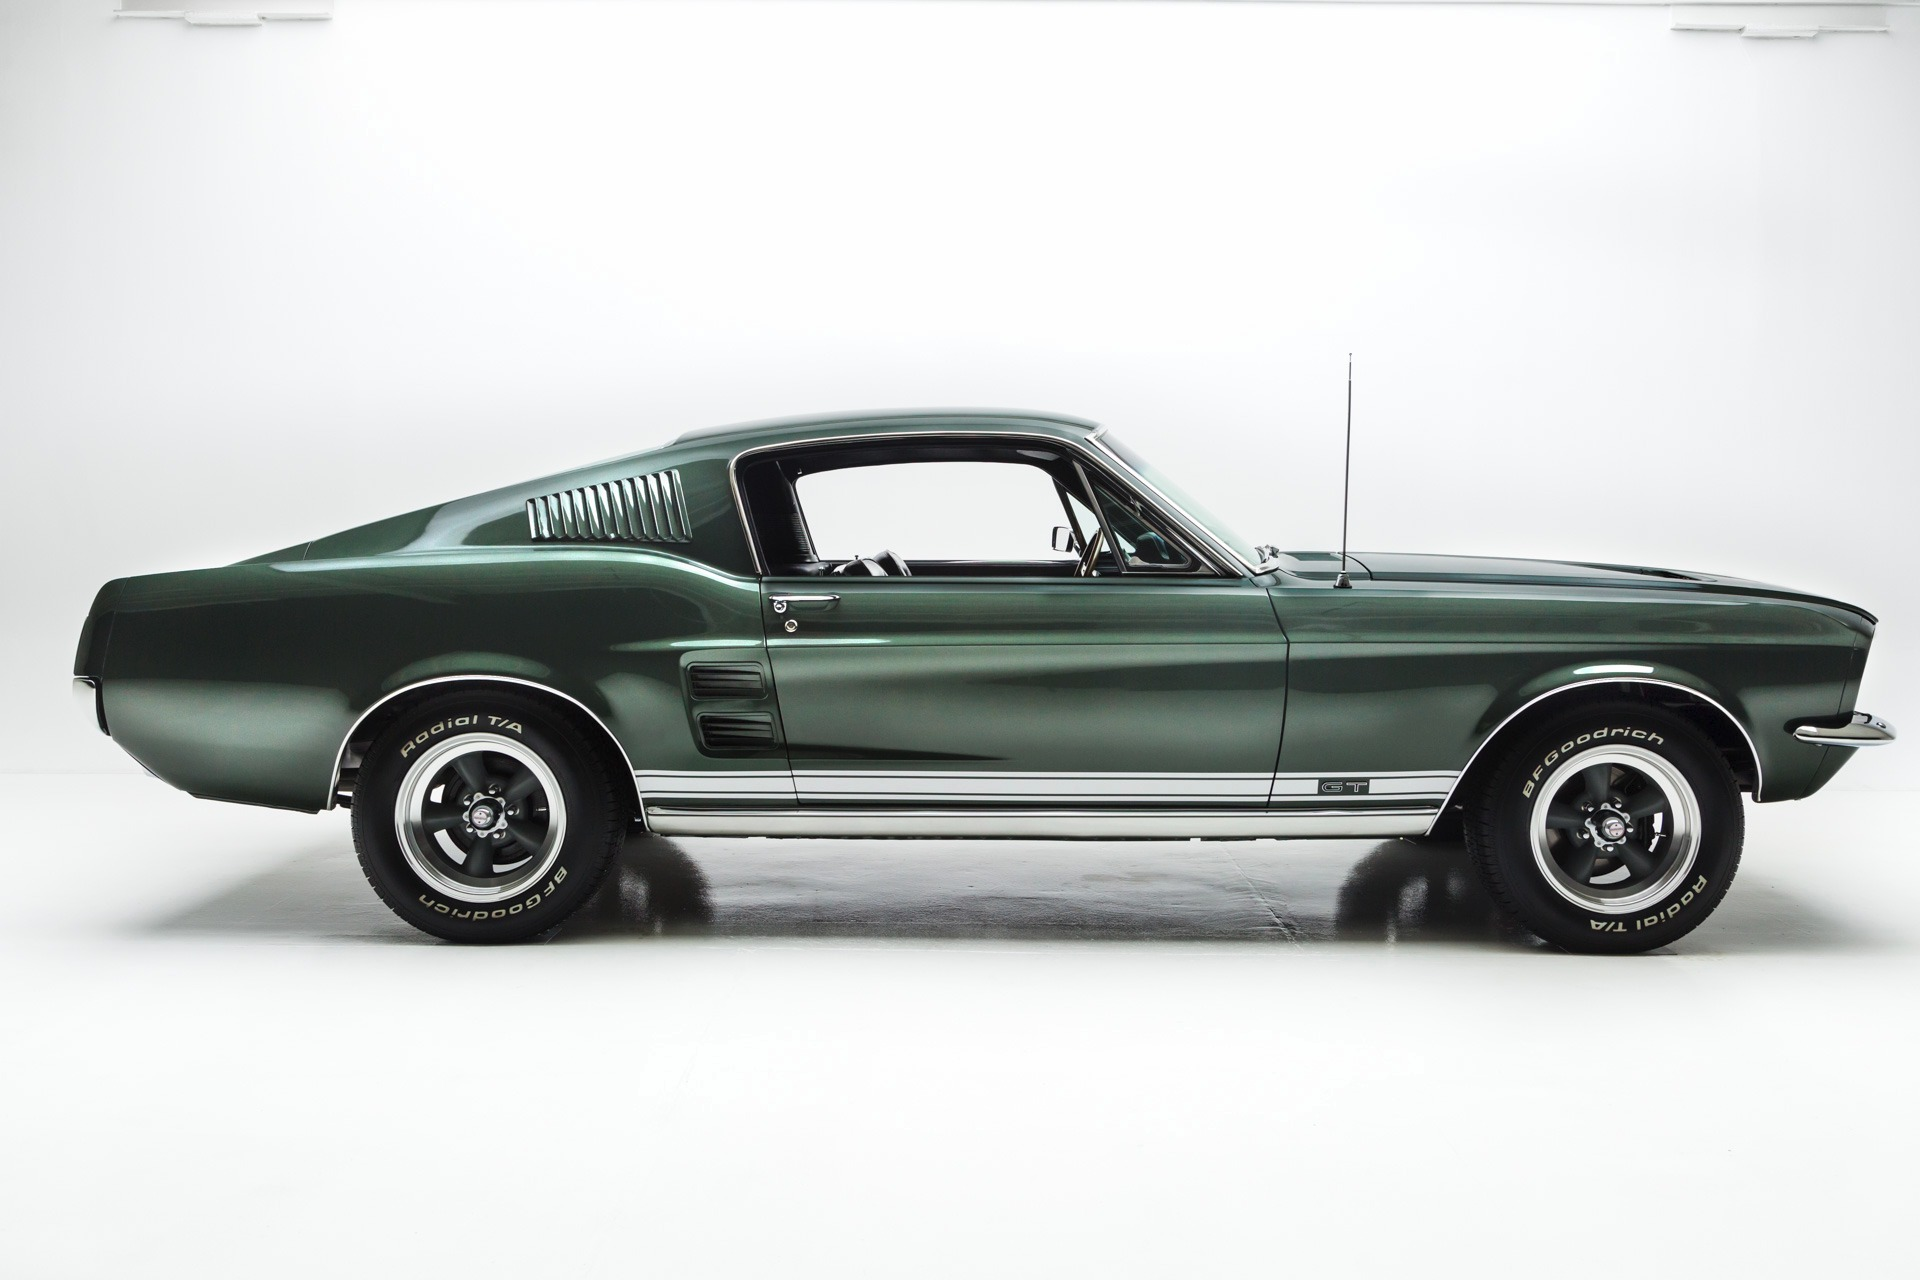 1967 Ford Mustang GT HiPo 289 4-Speed - American Dream Machines ...